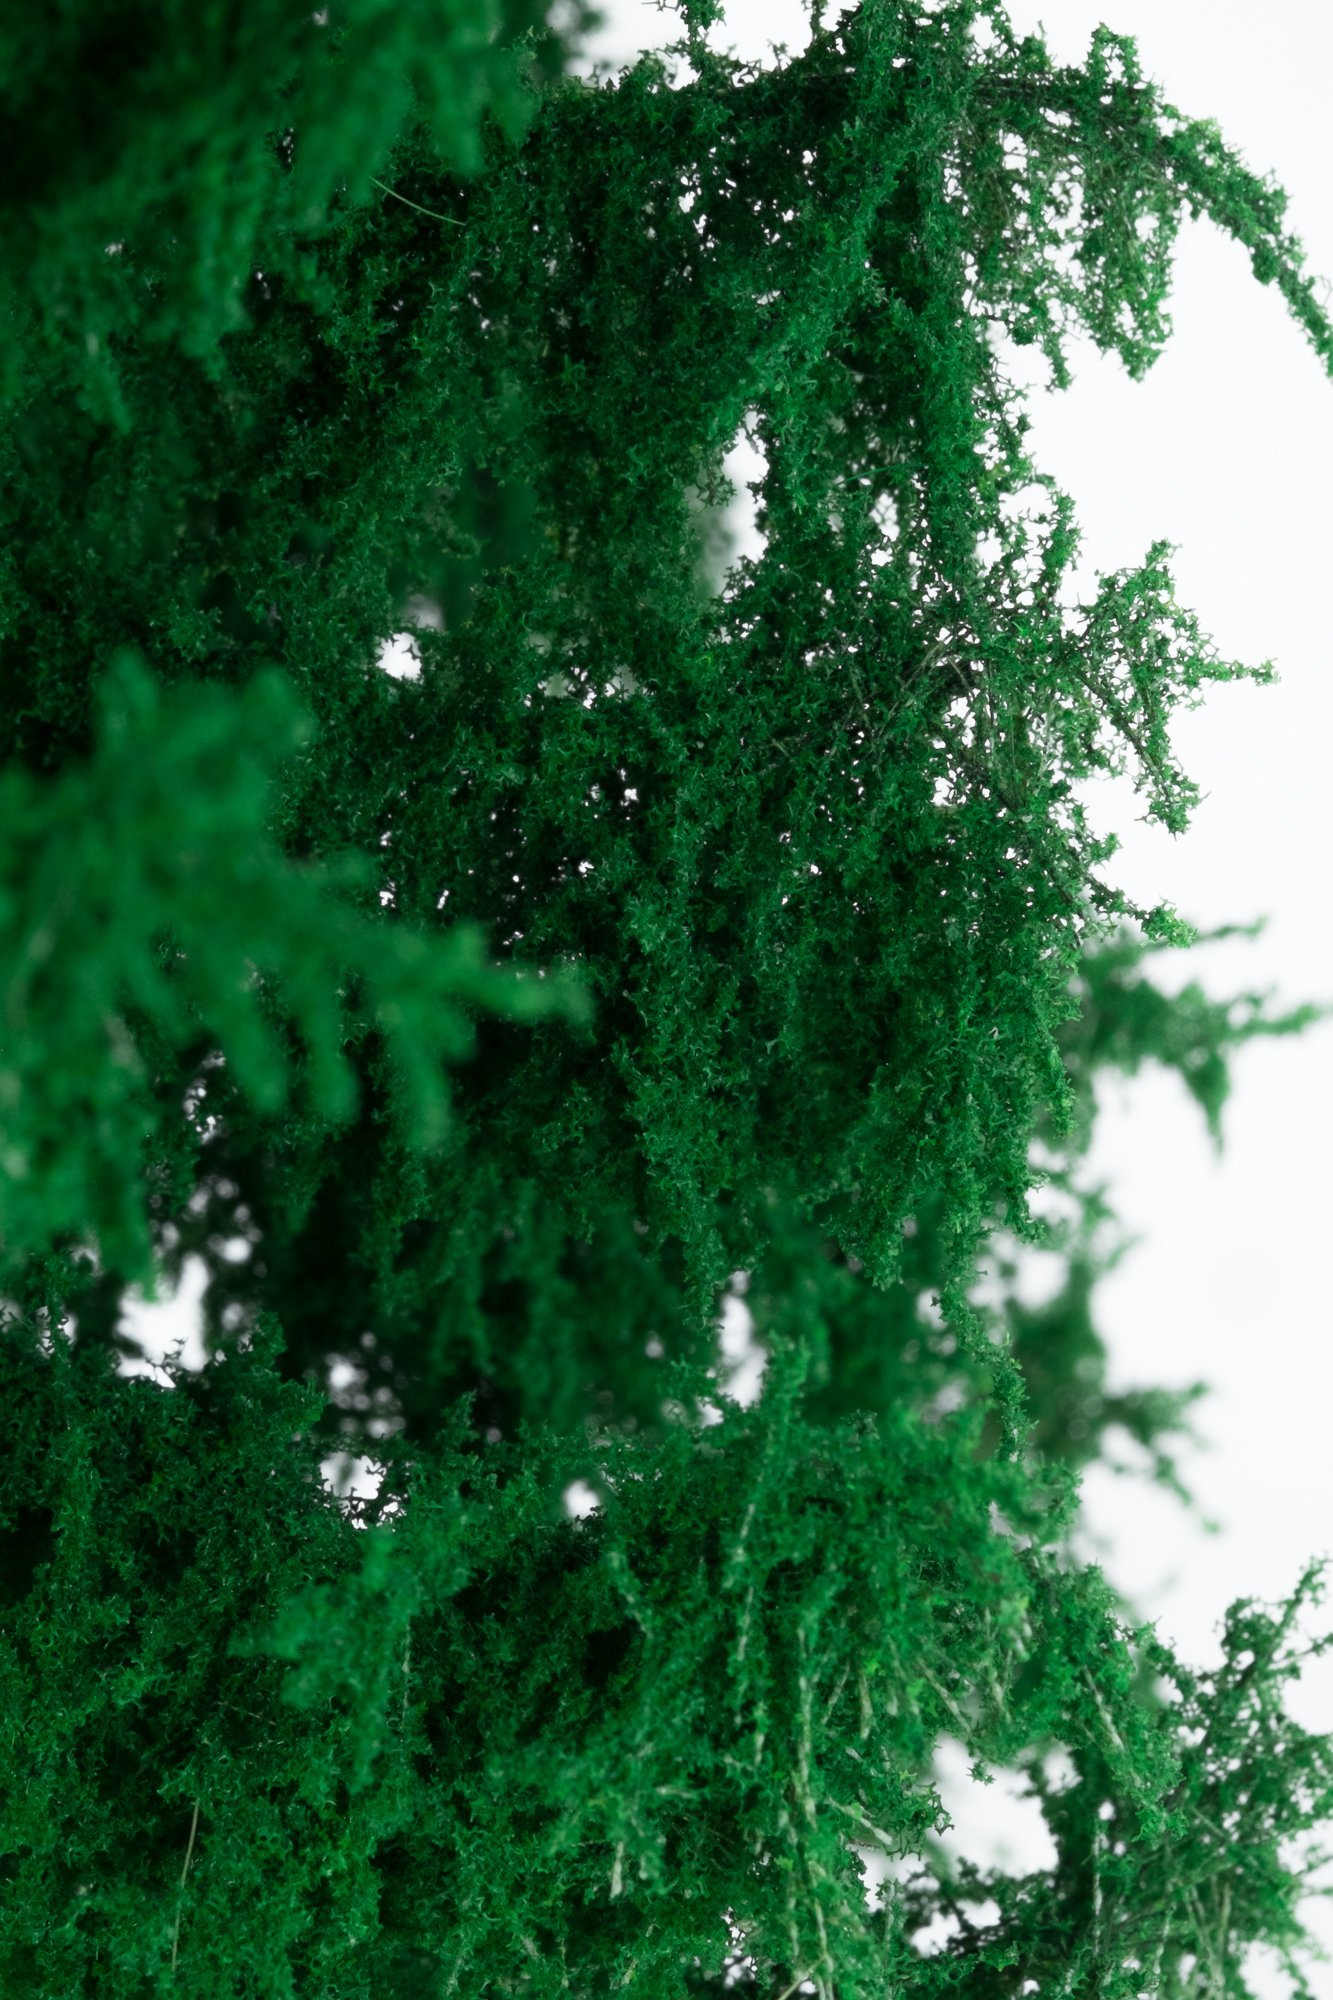 Closeup of foliage on spruce tree model. Made from high quality model supplies by Primo Models.